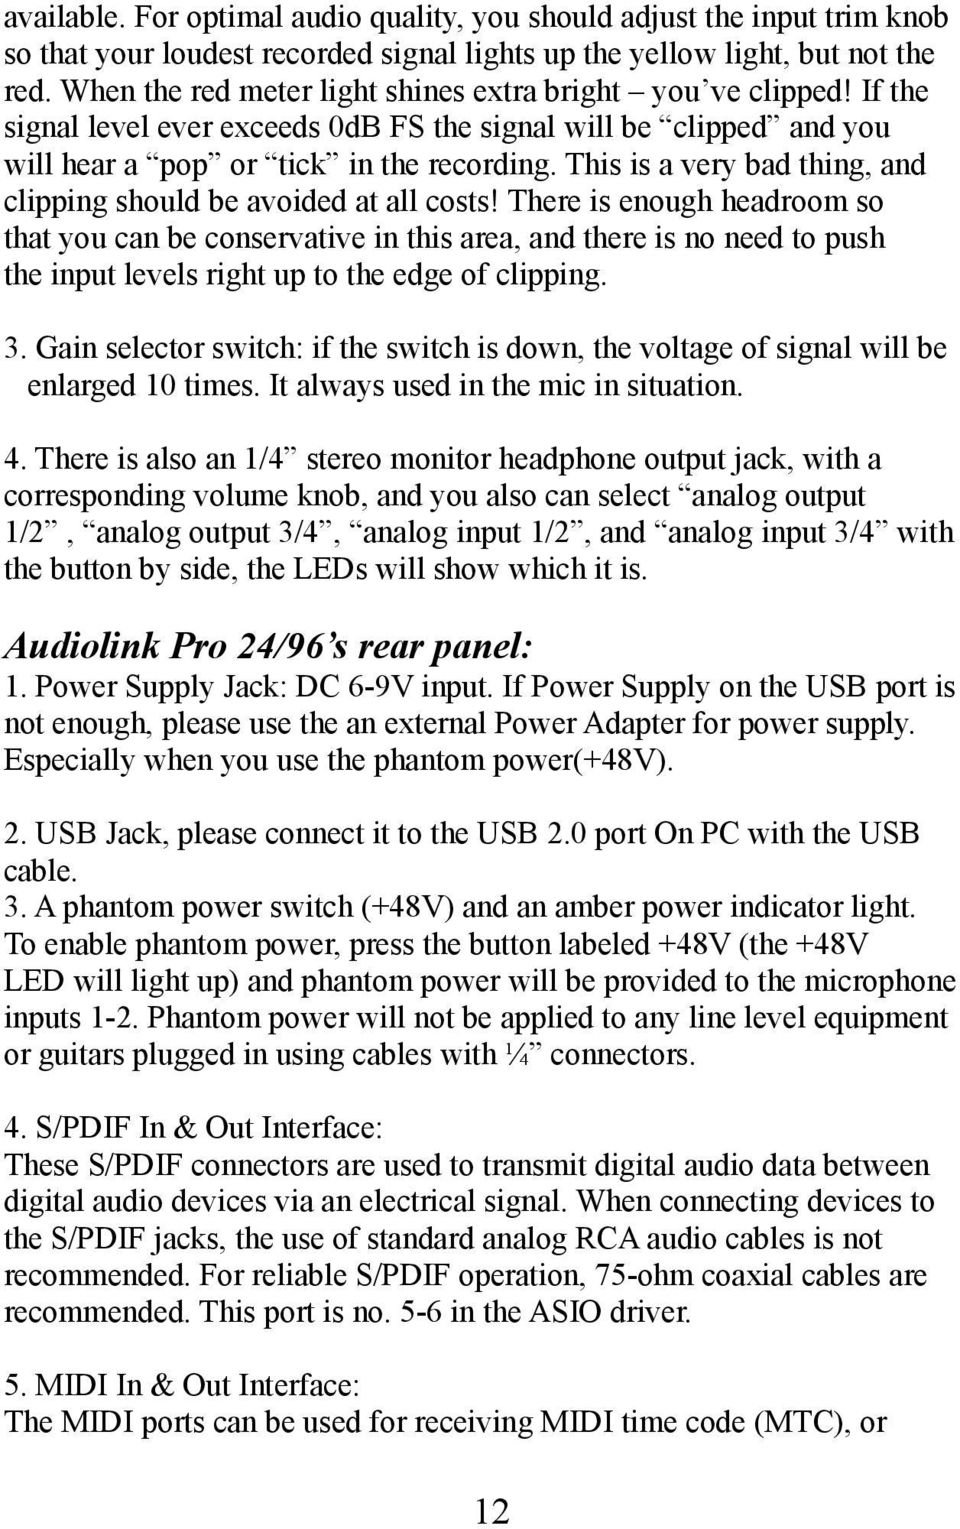 Miditech Audiolink Pro 24 96 Pdf Wiring A 1 4 Out Put Jack This Is Very Bad Thing And Clipping Should Be Avoided At All Costs